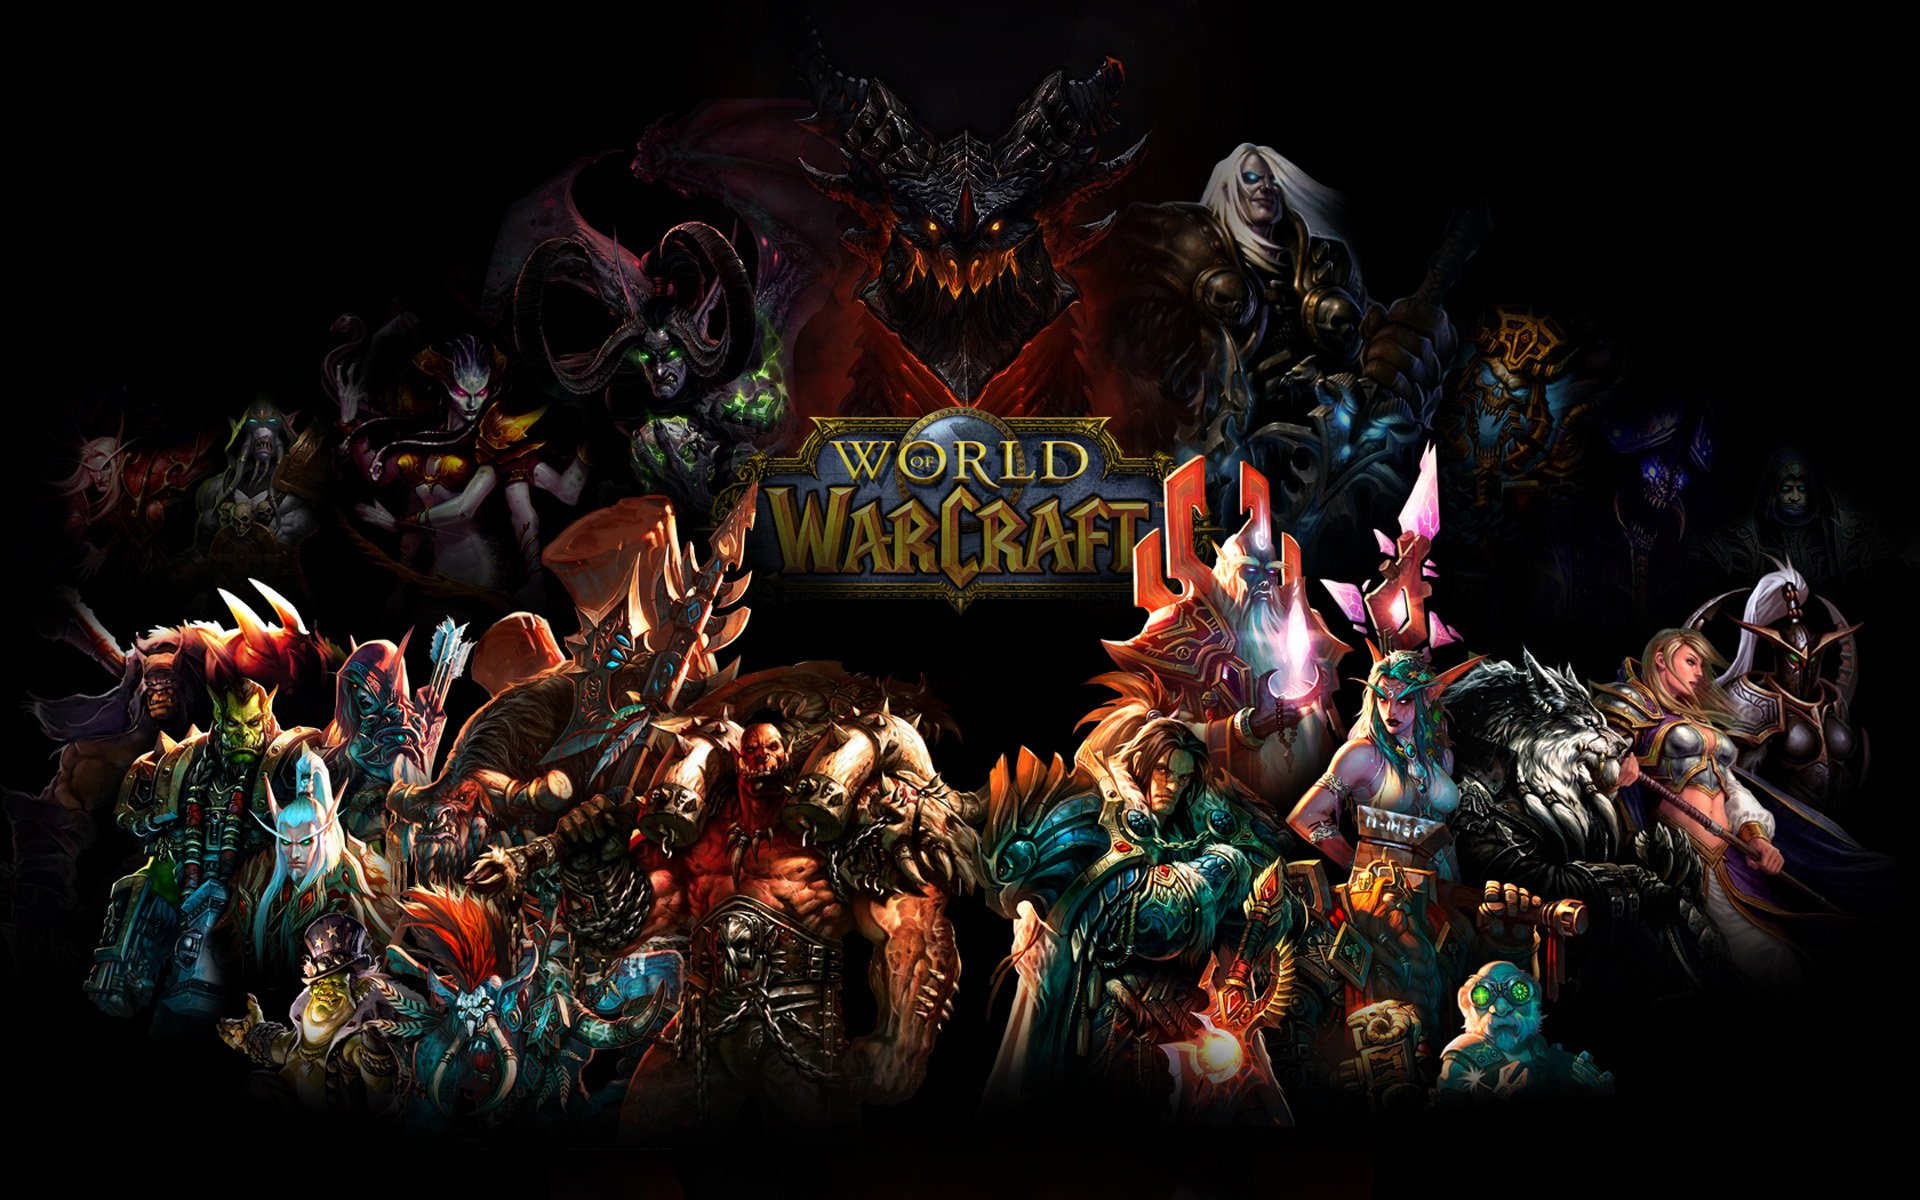 world of warcraft fond d u0026 39  u00e9cran hd